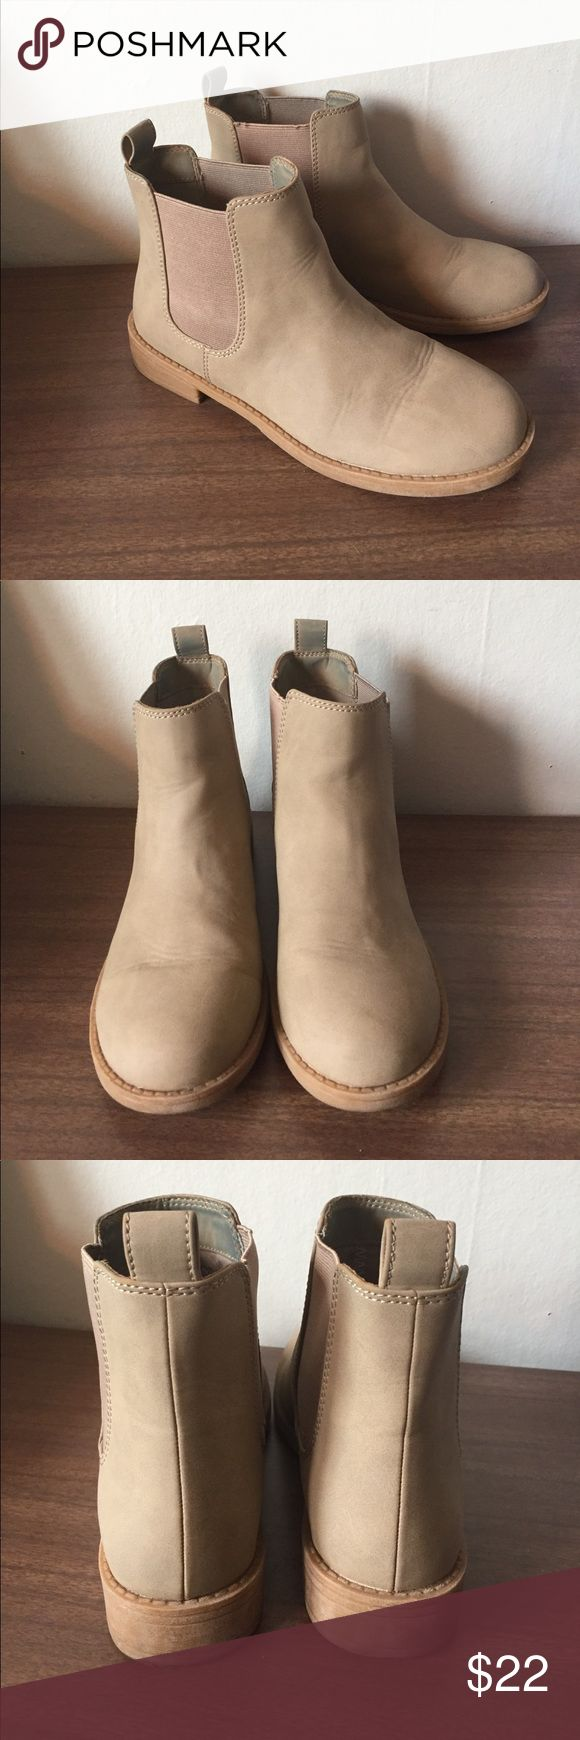 Tan Chelsea Boots Great condition fit true to size H&M Shoes Ankle Boots & Booties